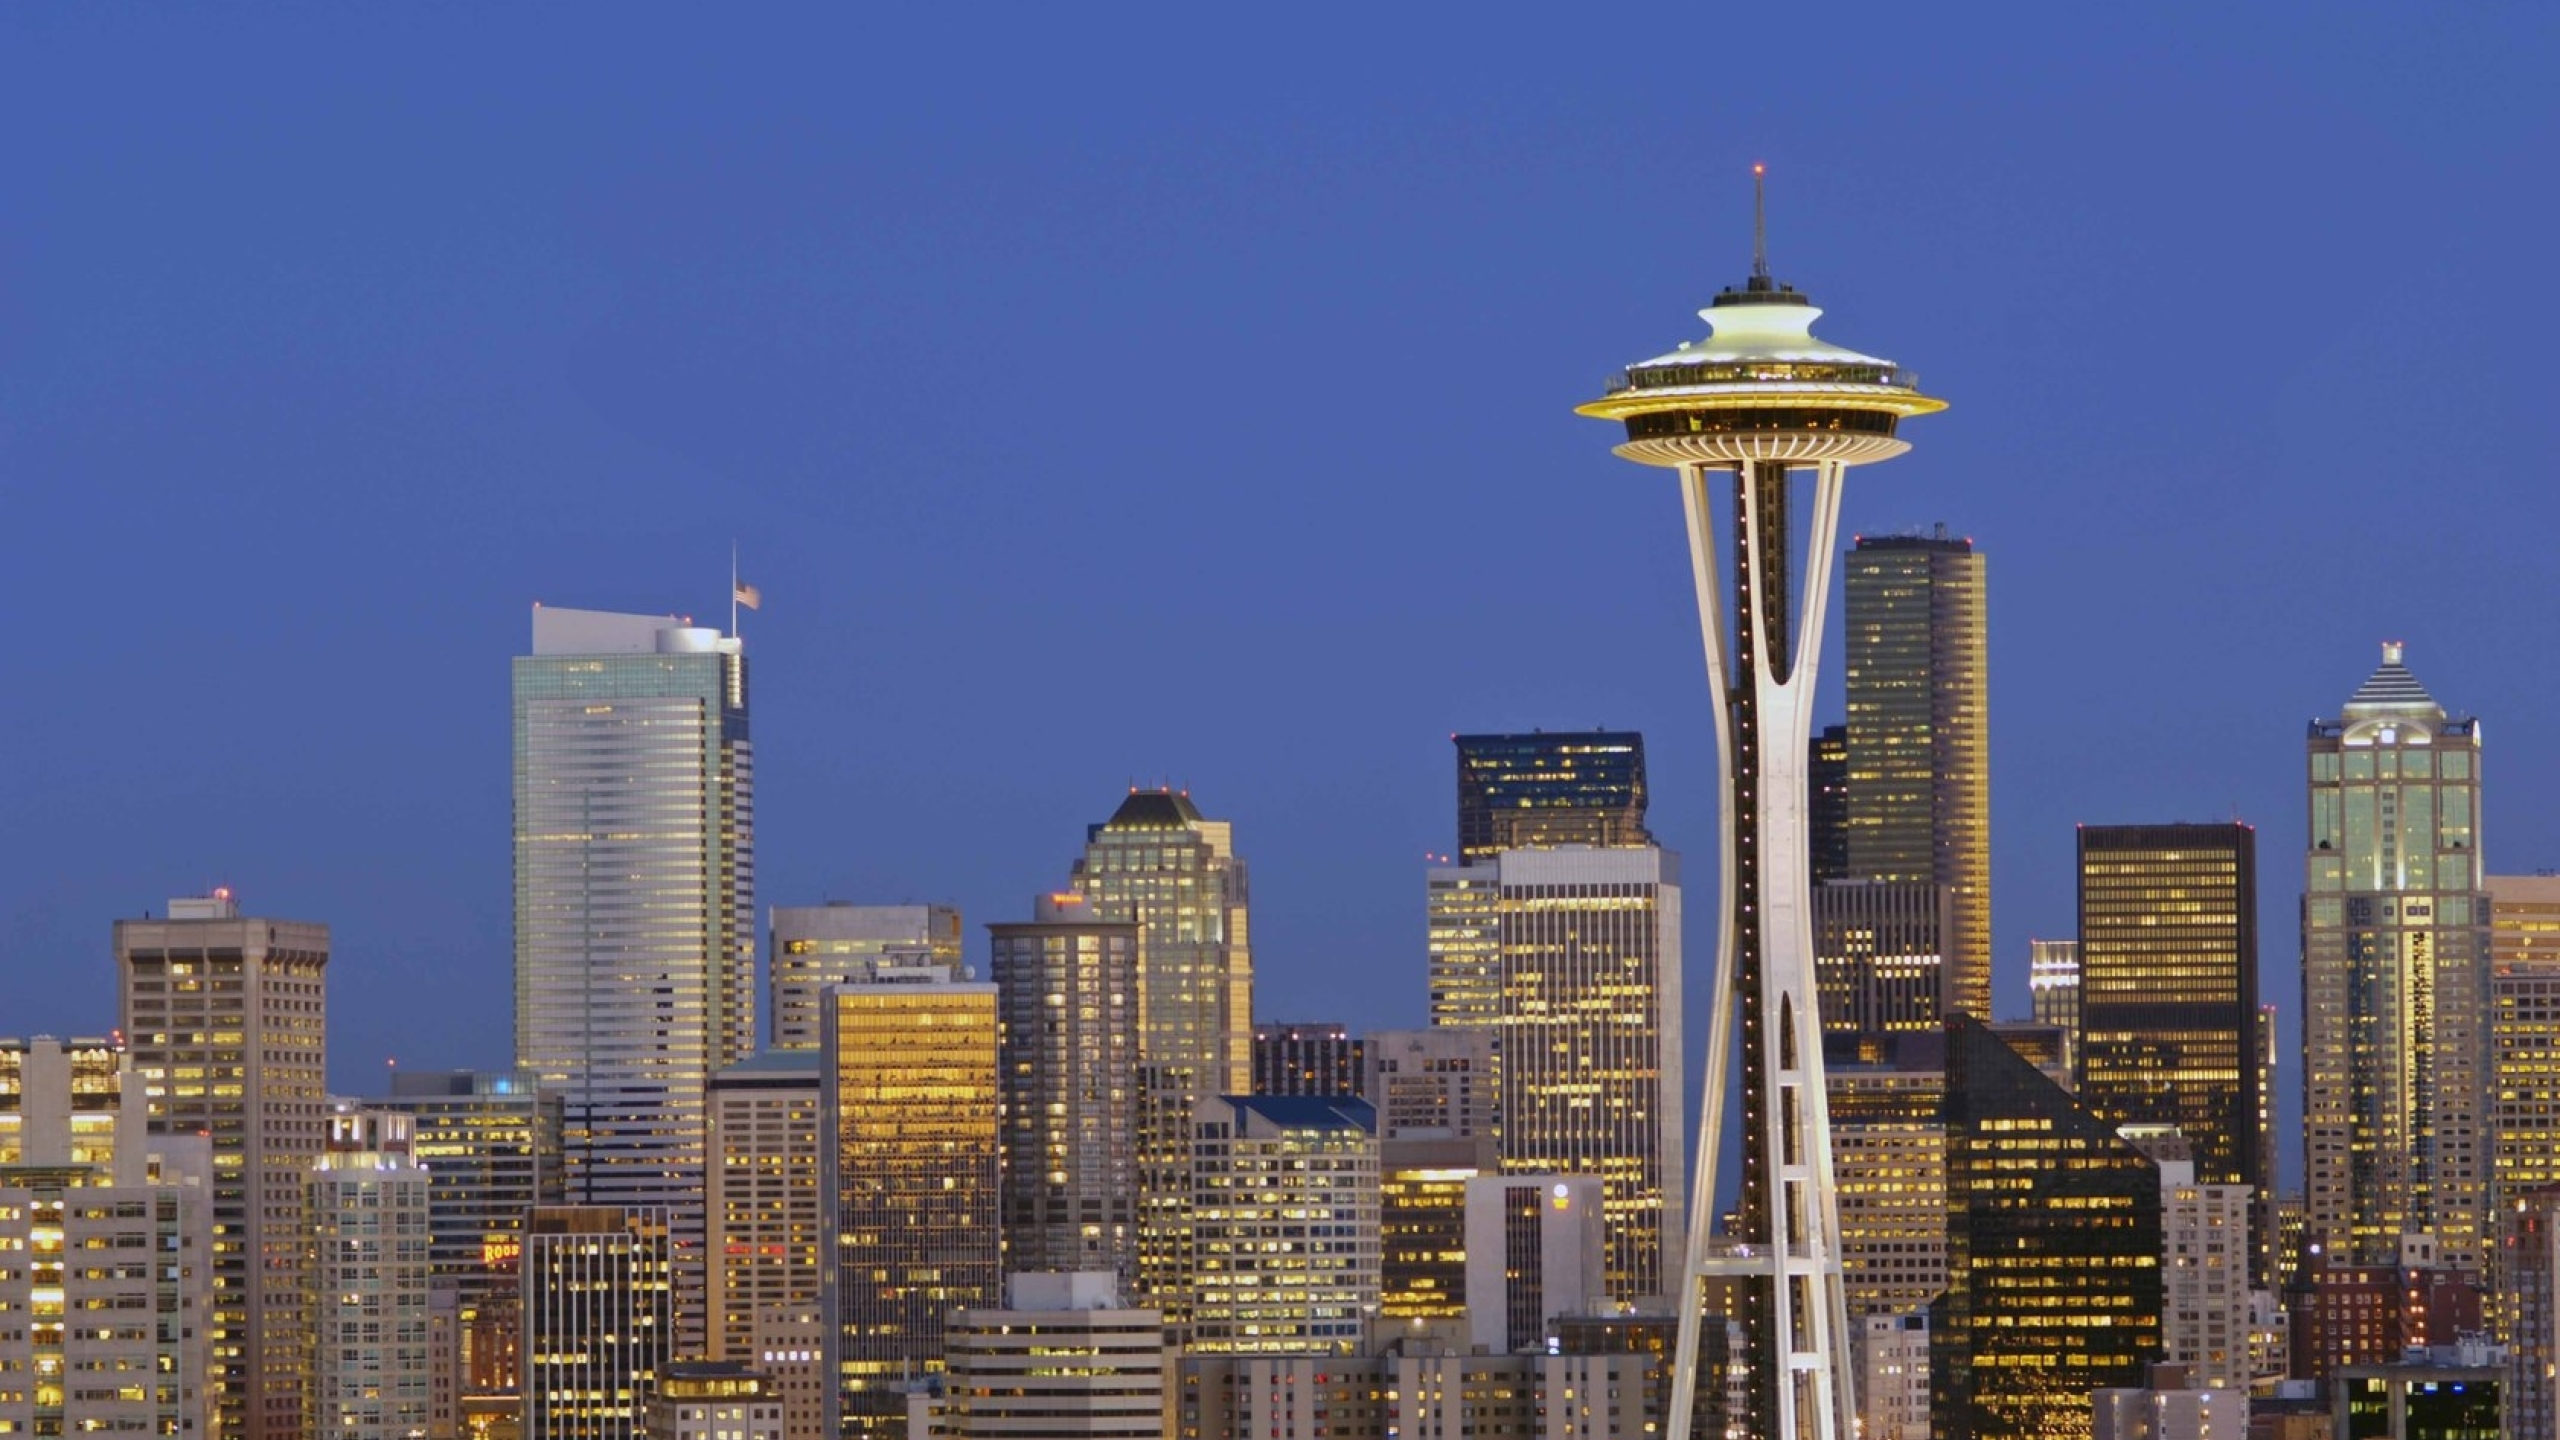 2560x1440 Seattle Twilight Washington 1440p Resolution Wallpaper Hd City 4k Wallpapers Images Photos And Background